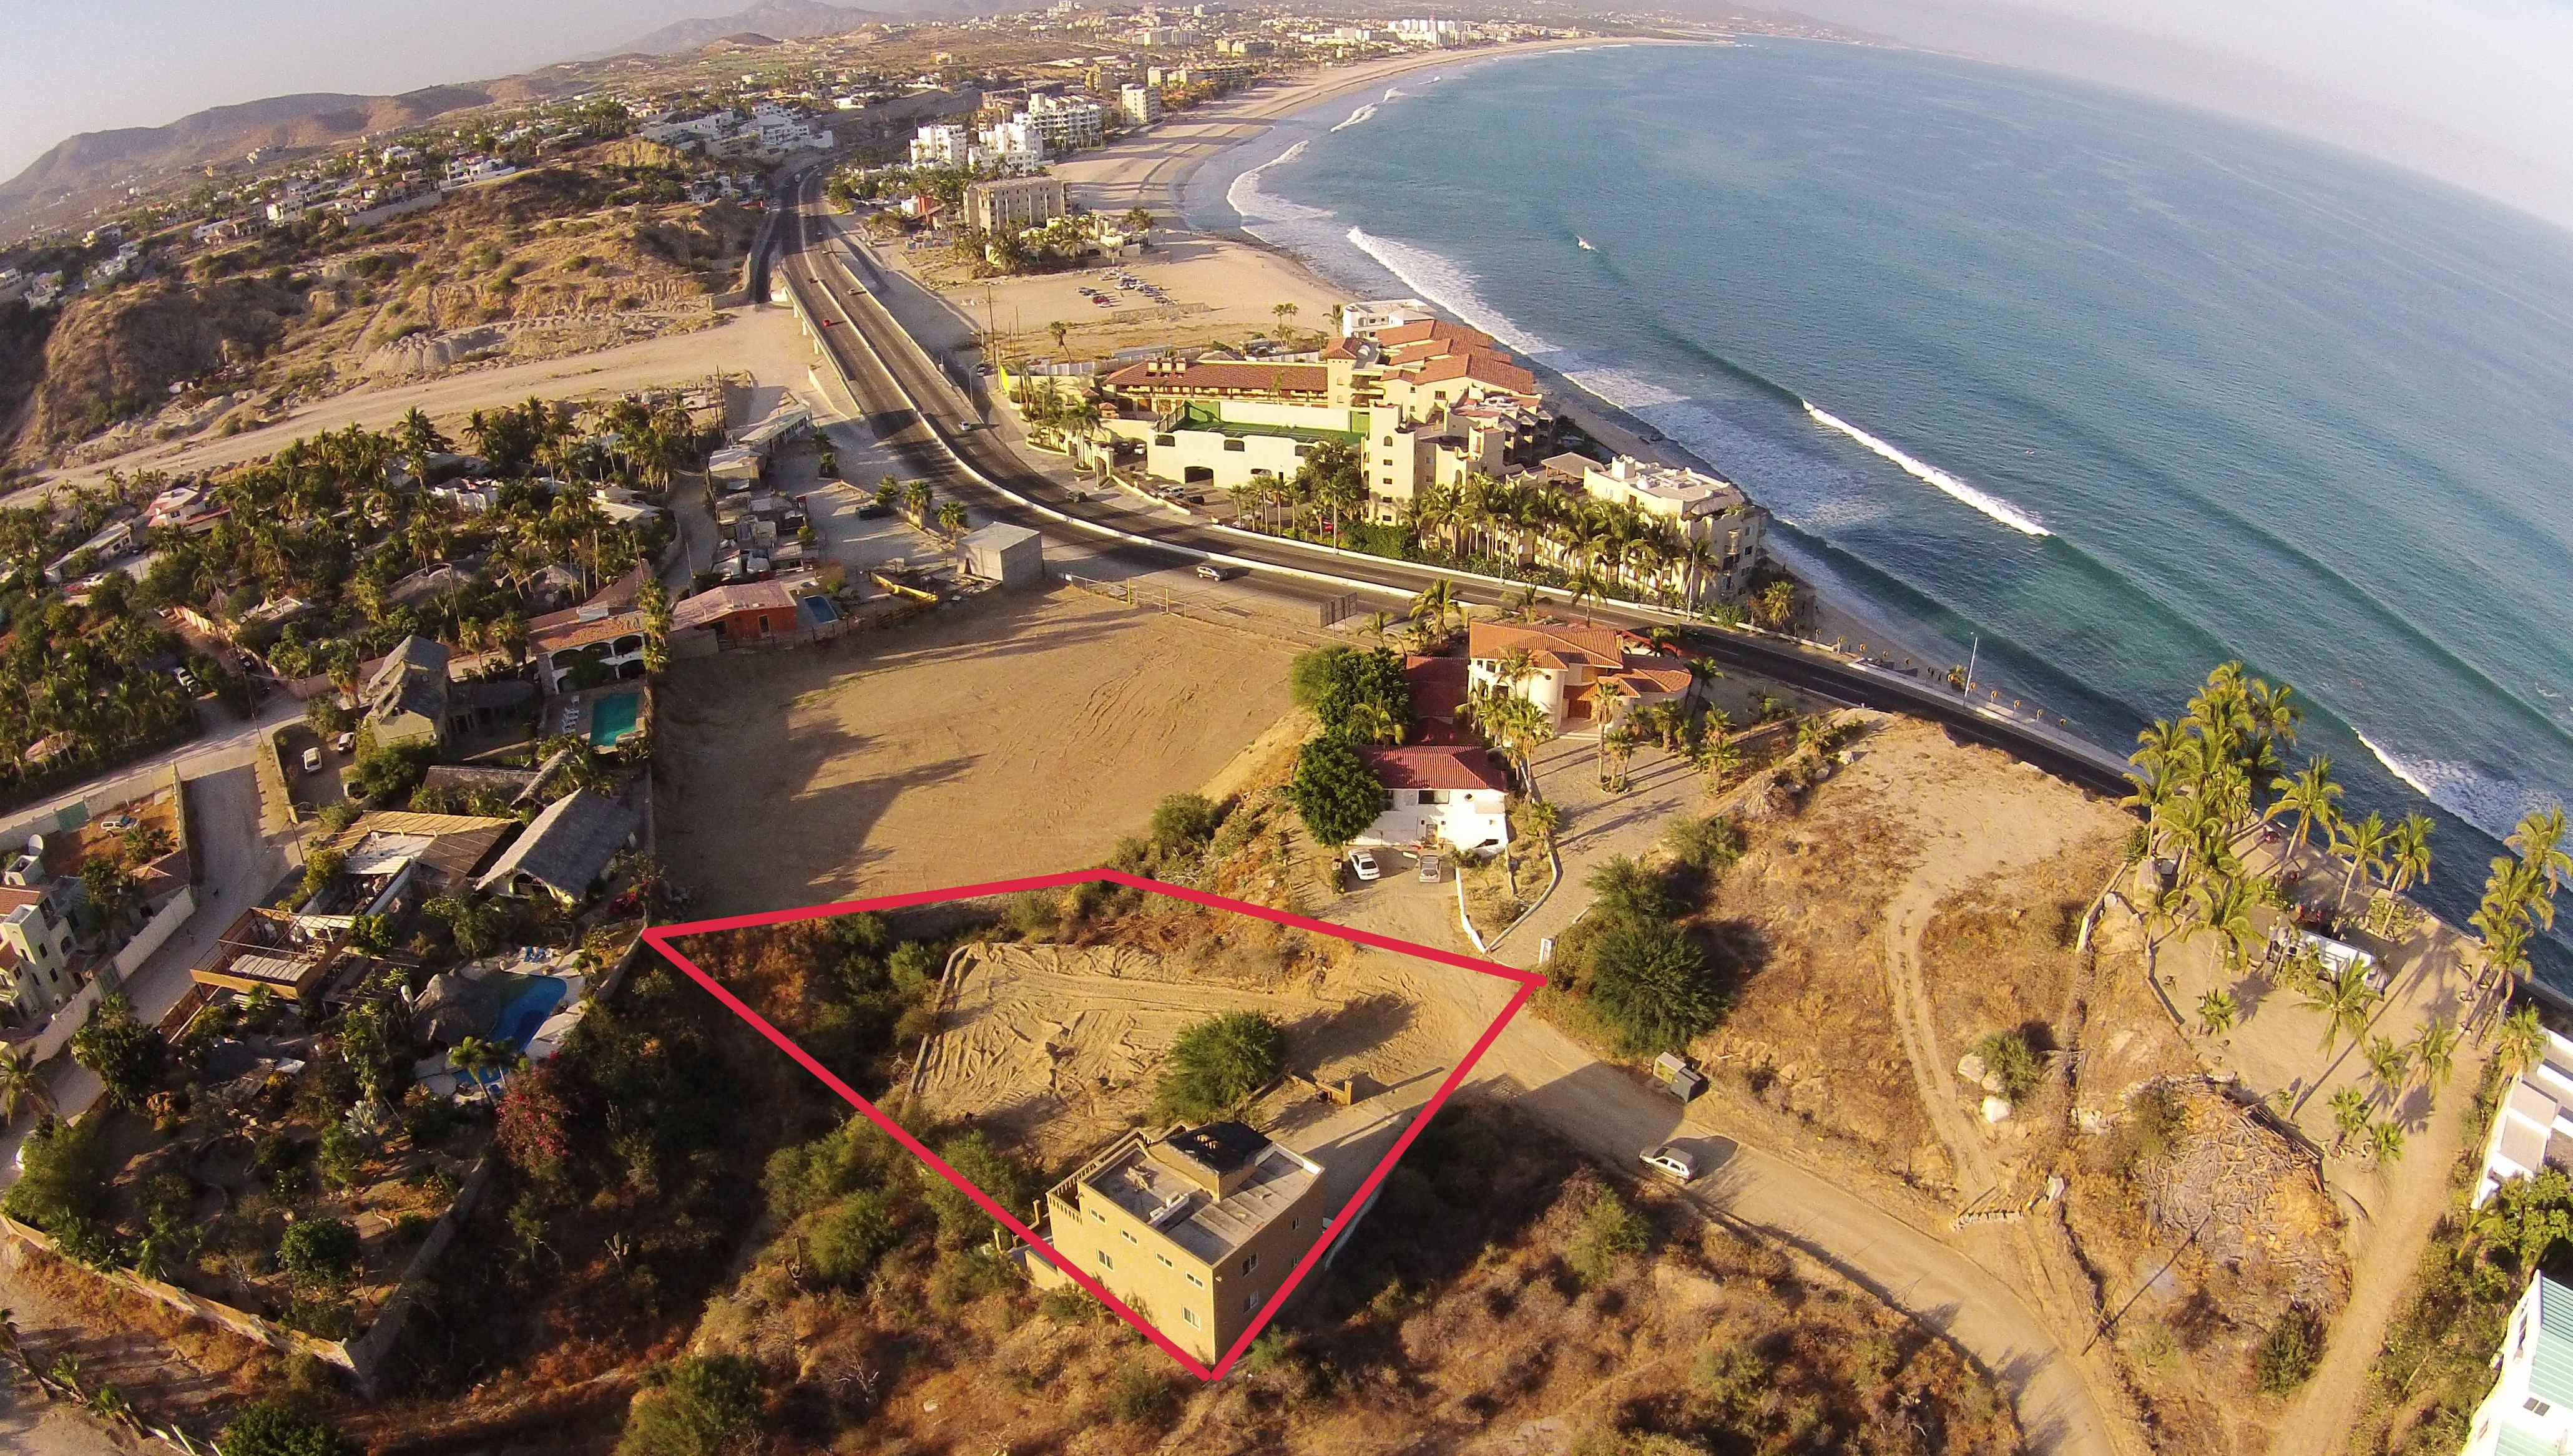 property for sale costa azul gringo hill